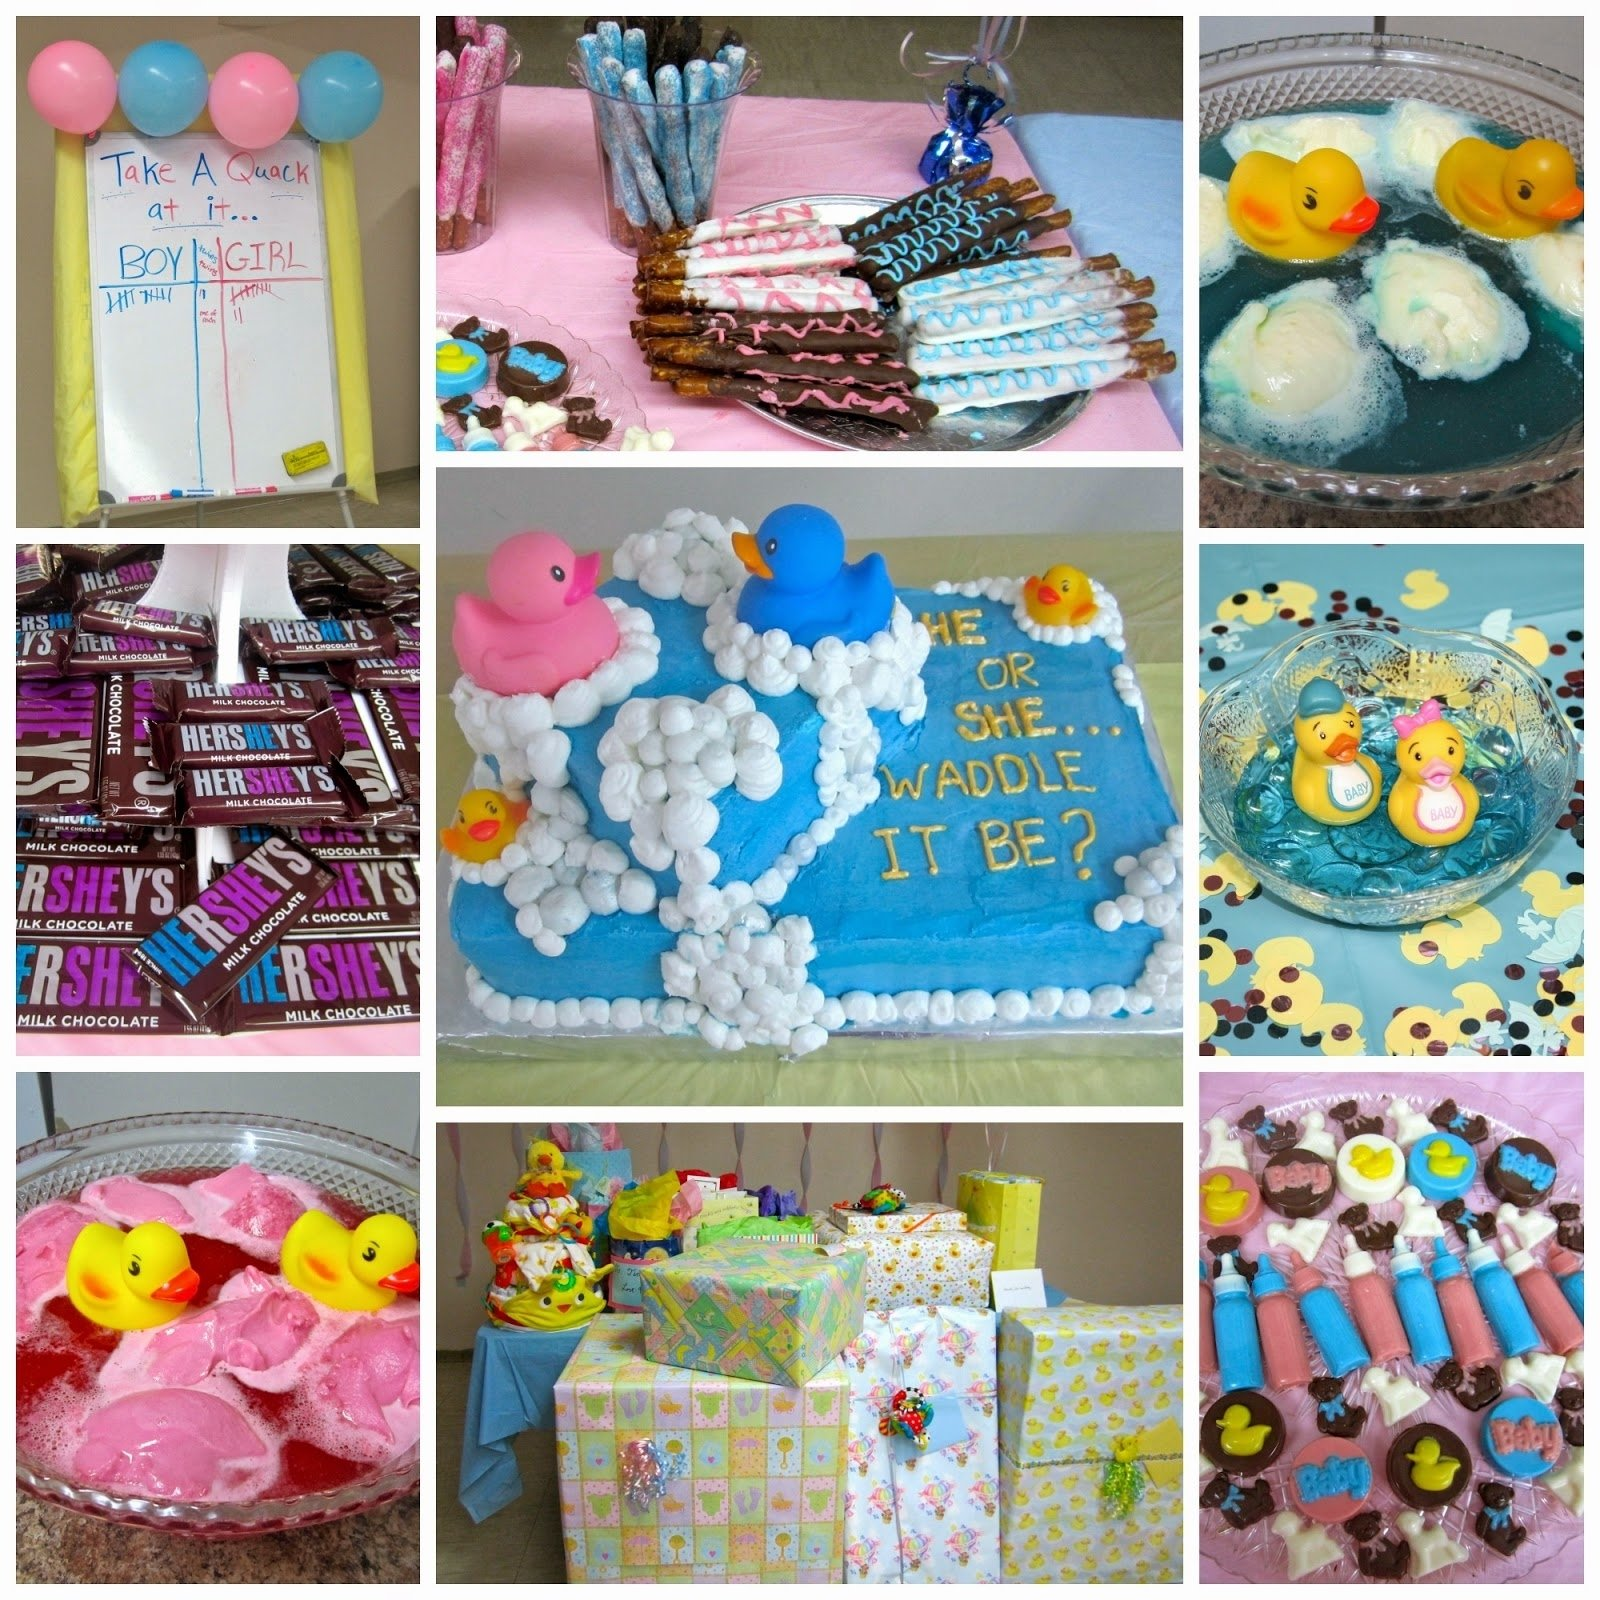 10 Fashionable Gift Ideas For Gender Reveal Party